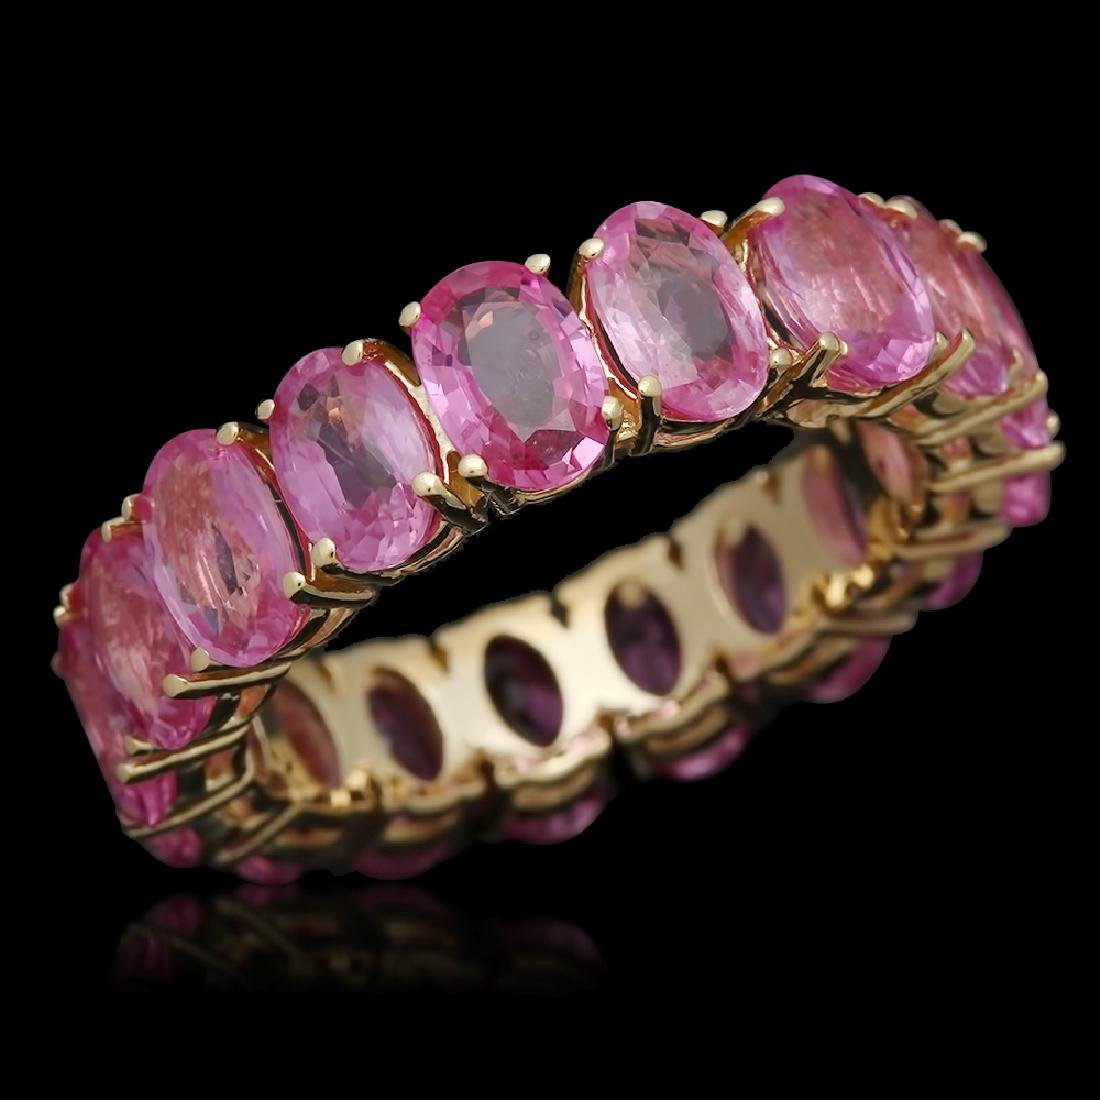 14K Gold 10.28ct Pink Sapphire Ring